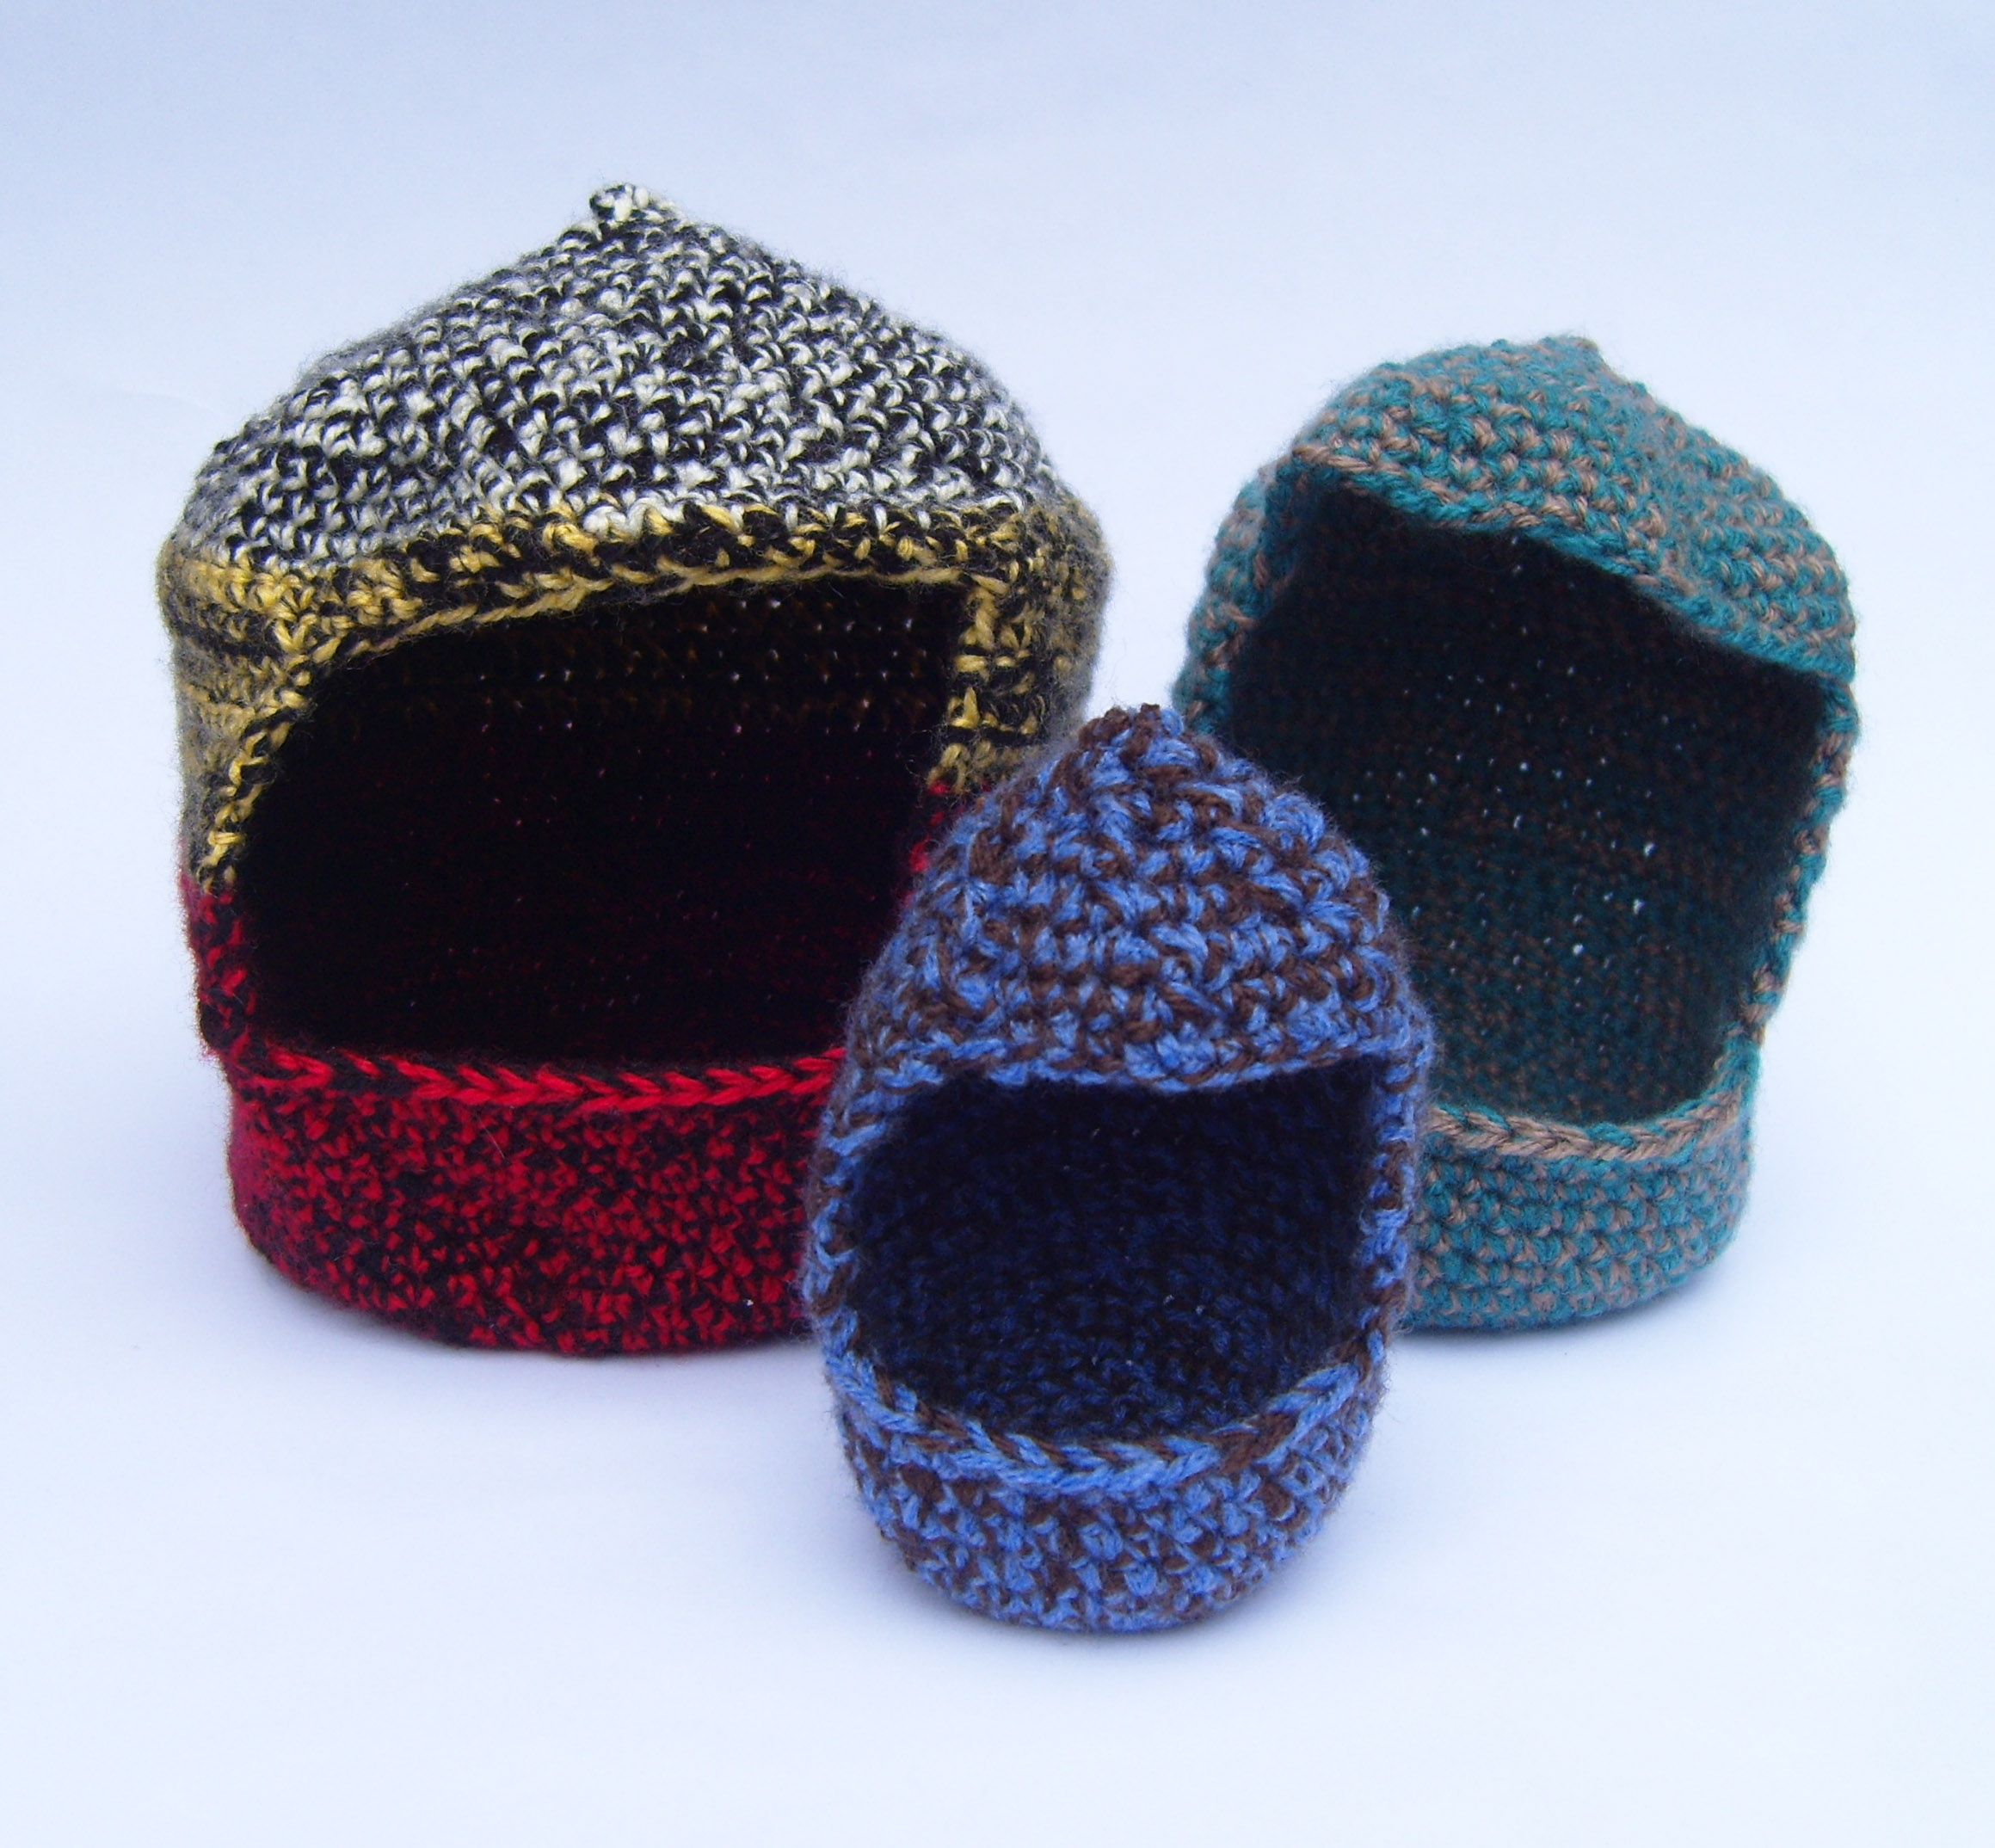 Crafting for Charity - use your crochet skills to make nests and cave for animal shelters near you.